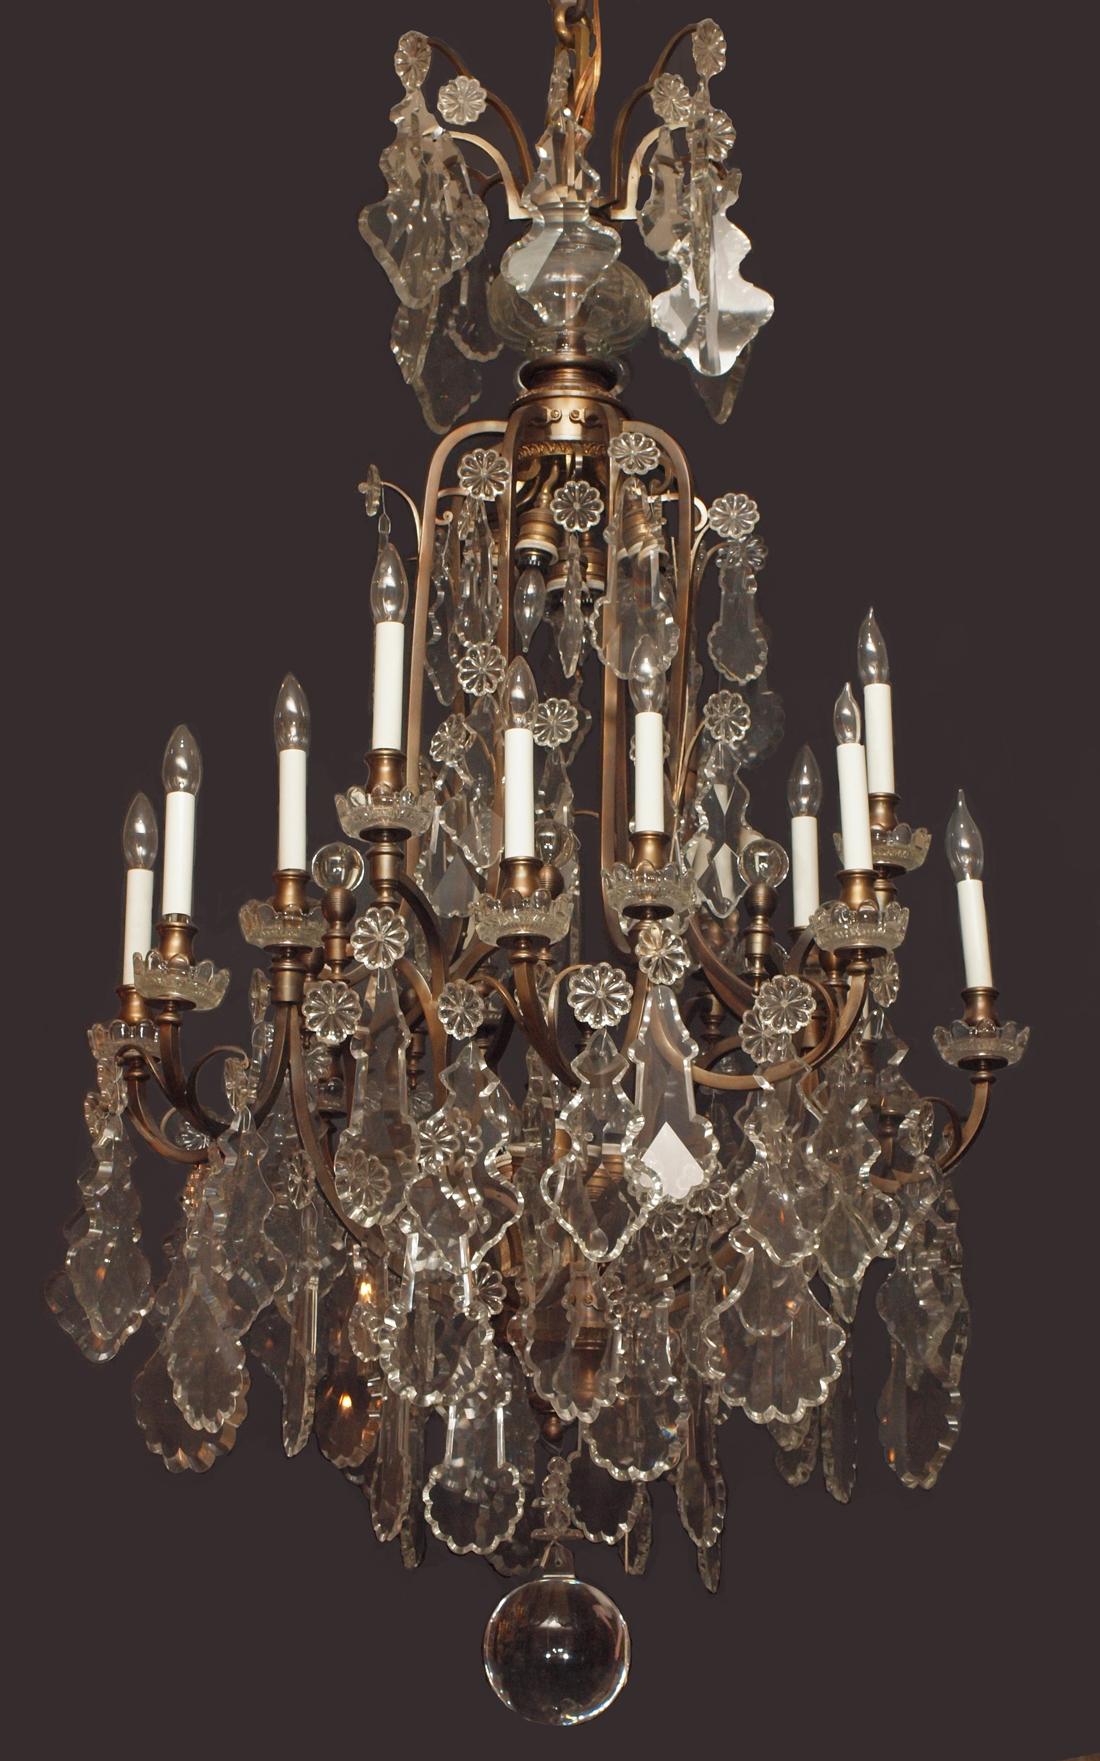 15 antique french chandeliers chandelier ideas chandeliers antiques chandeliers and french with antique french chandeliers image 9 of 15 aloadofball